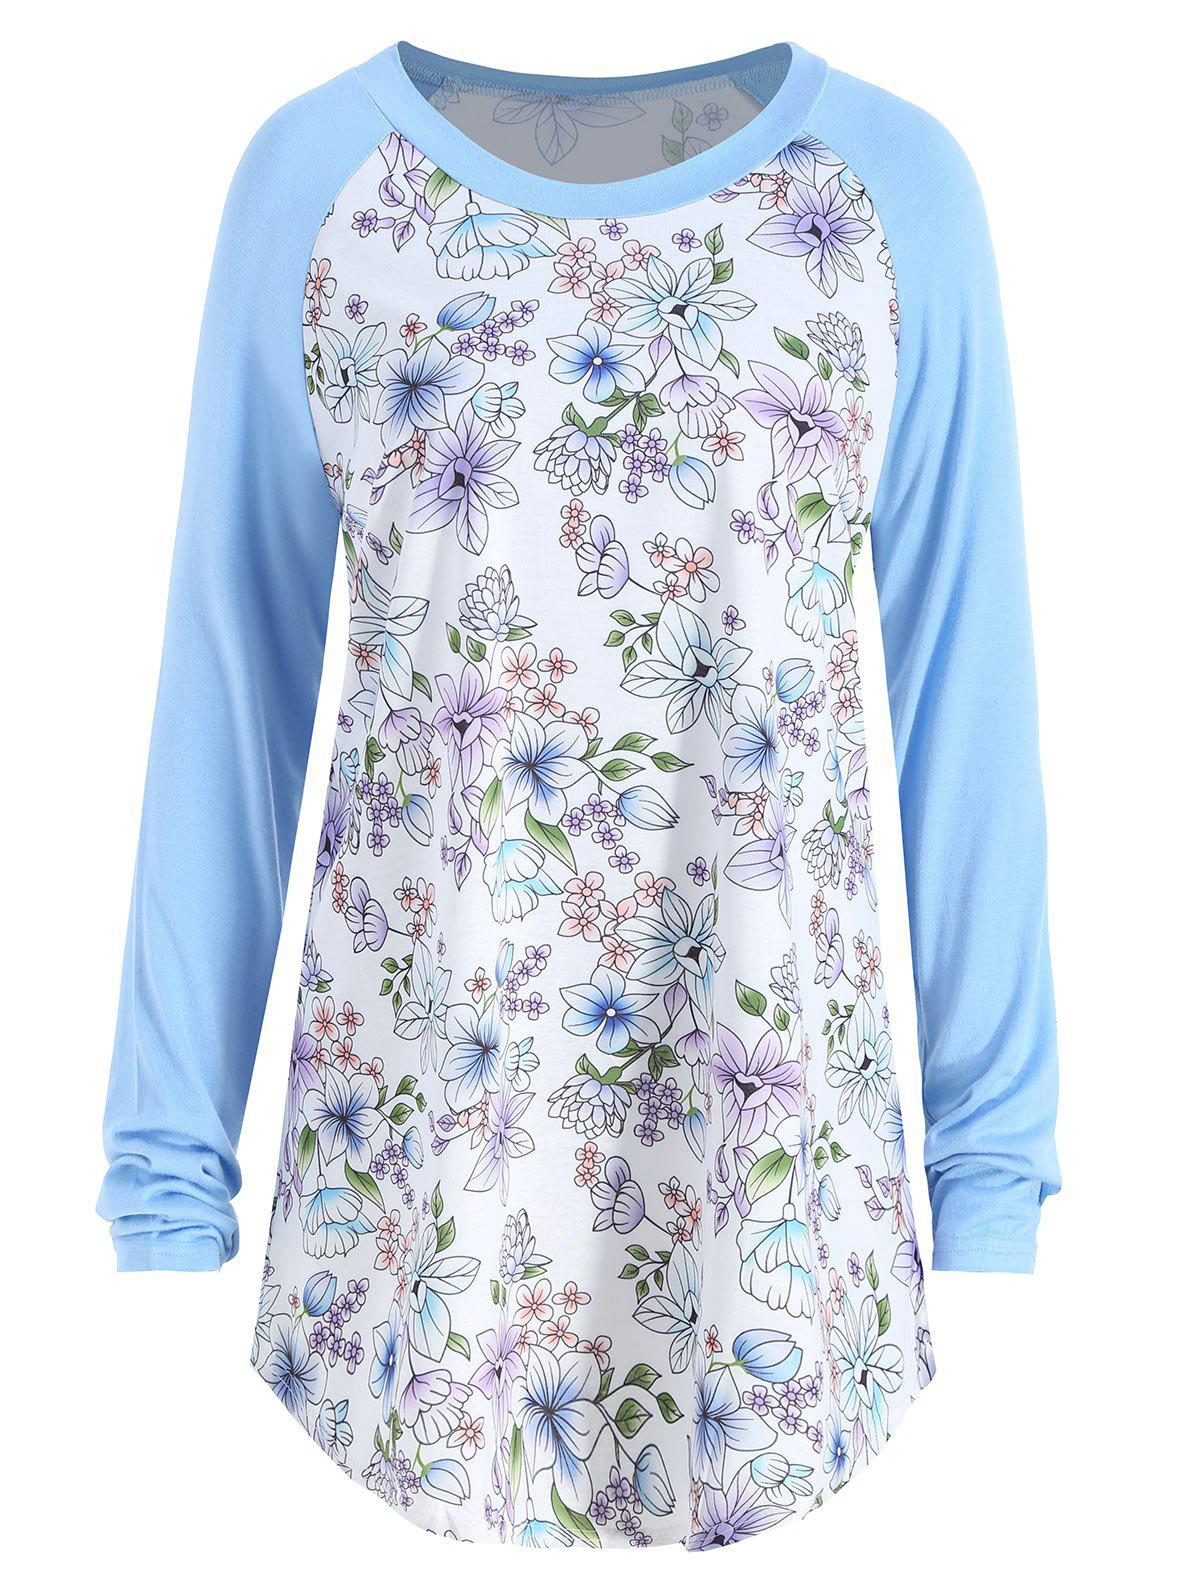 Floral Print Raglan Sleeve Plus Size Tee - LIGHT BLUE 2XL